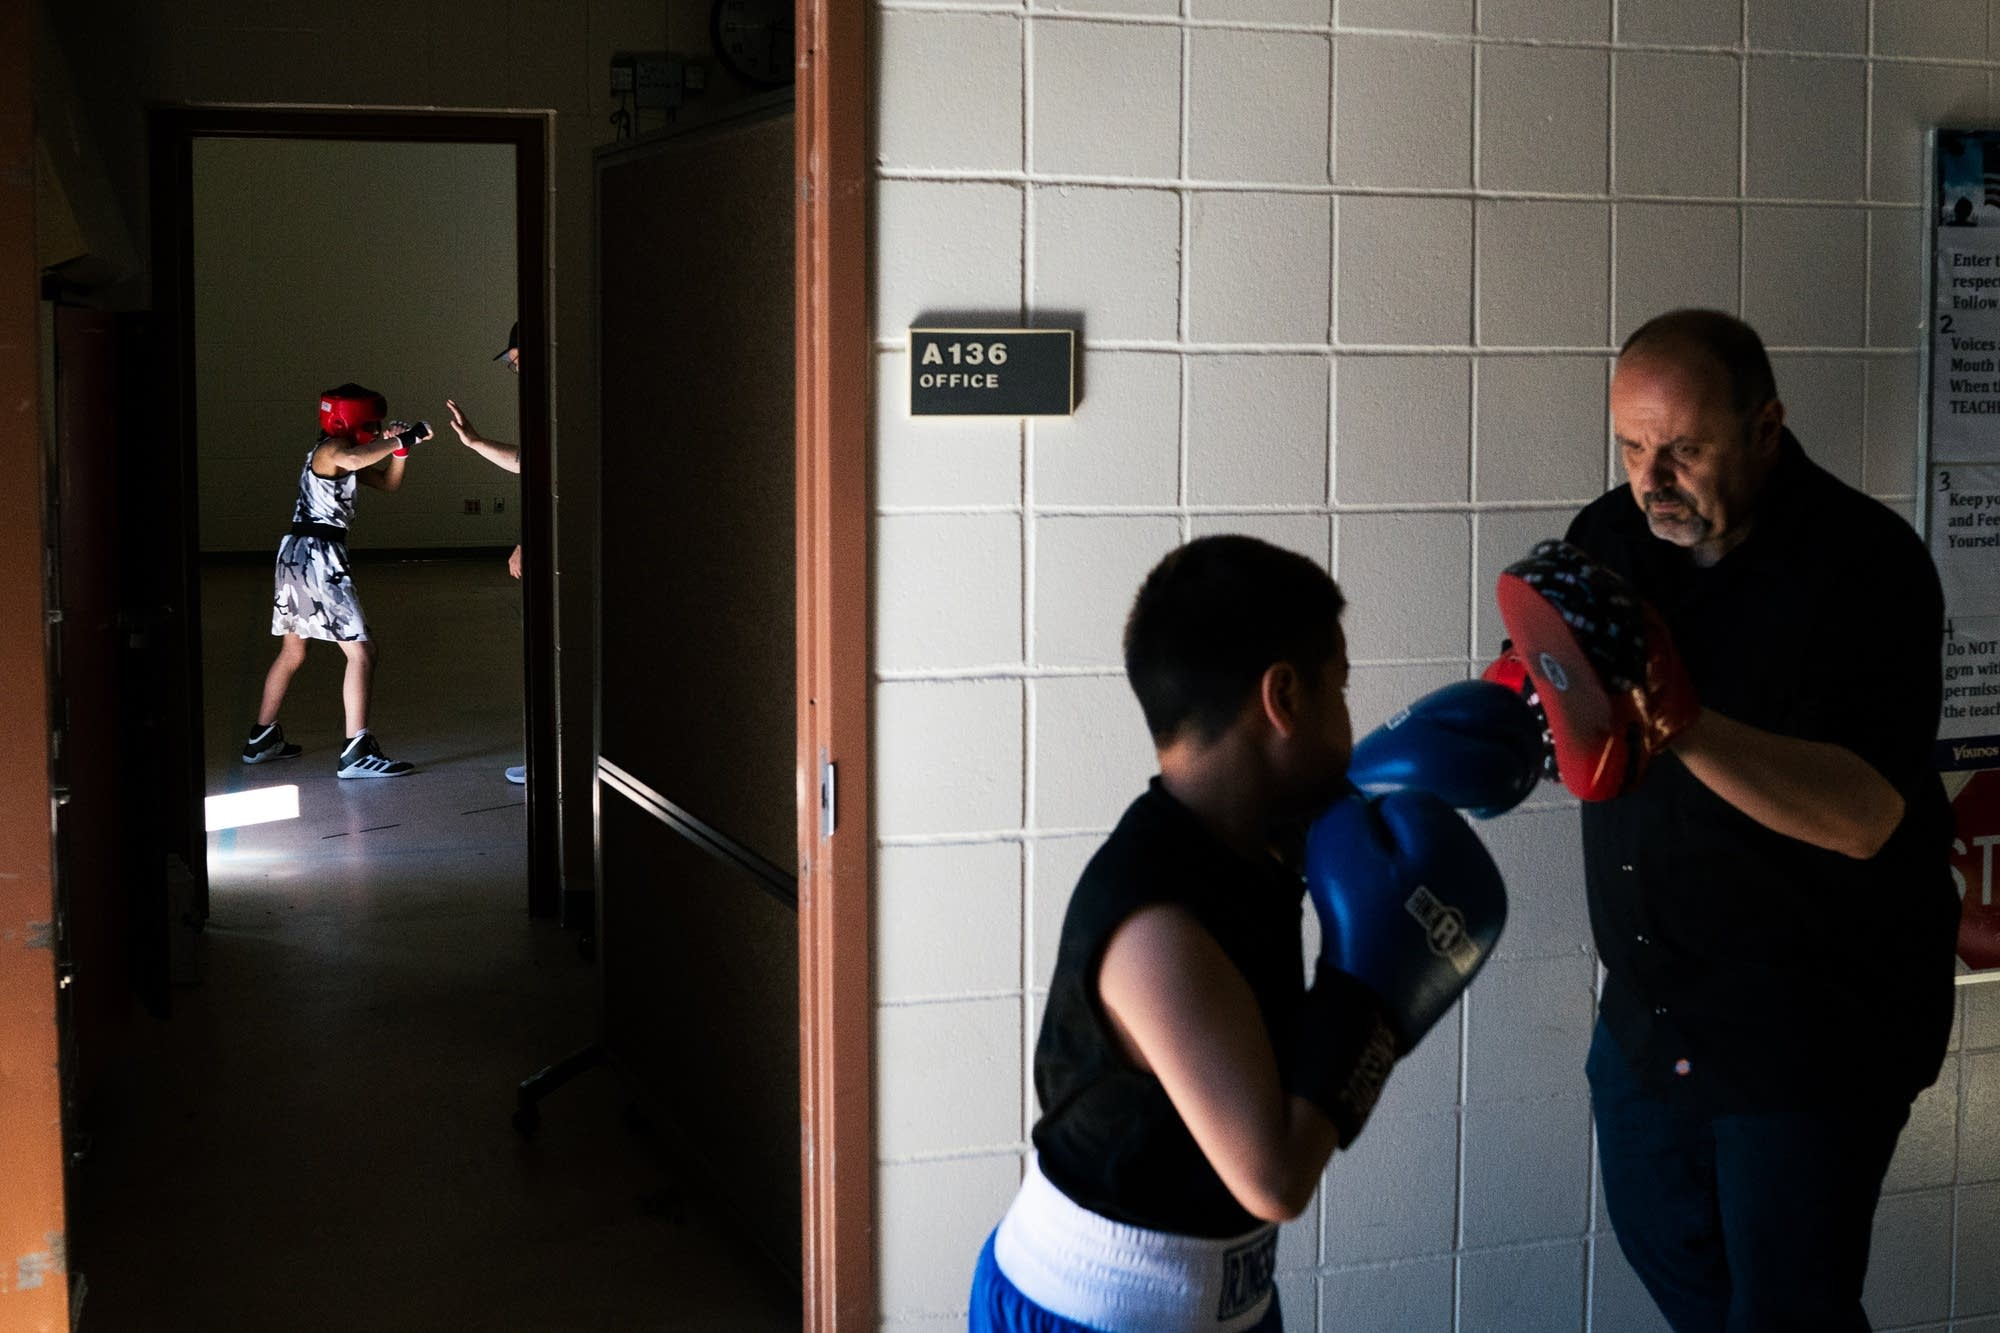 leven-year-old Alberto Luna of Leech Lake, left, drills with his coach.